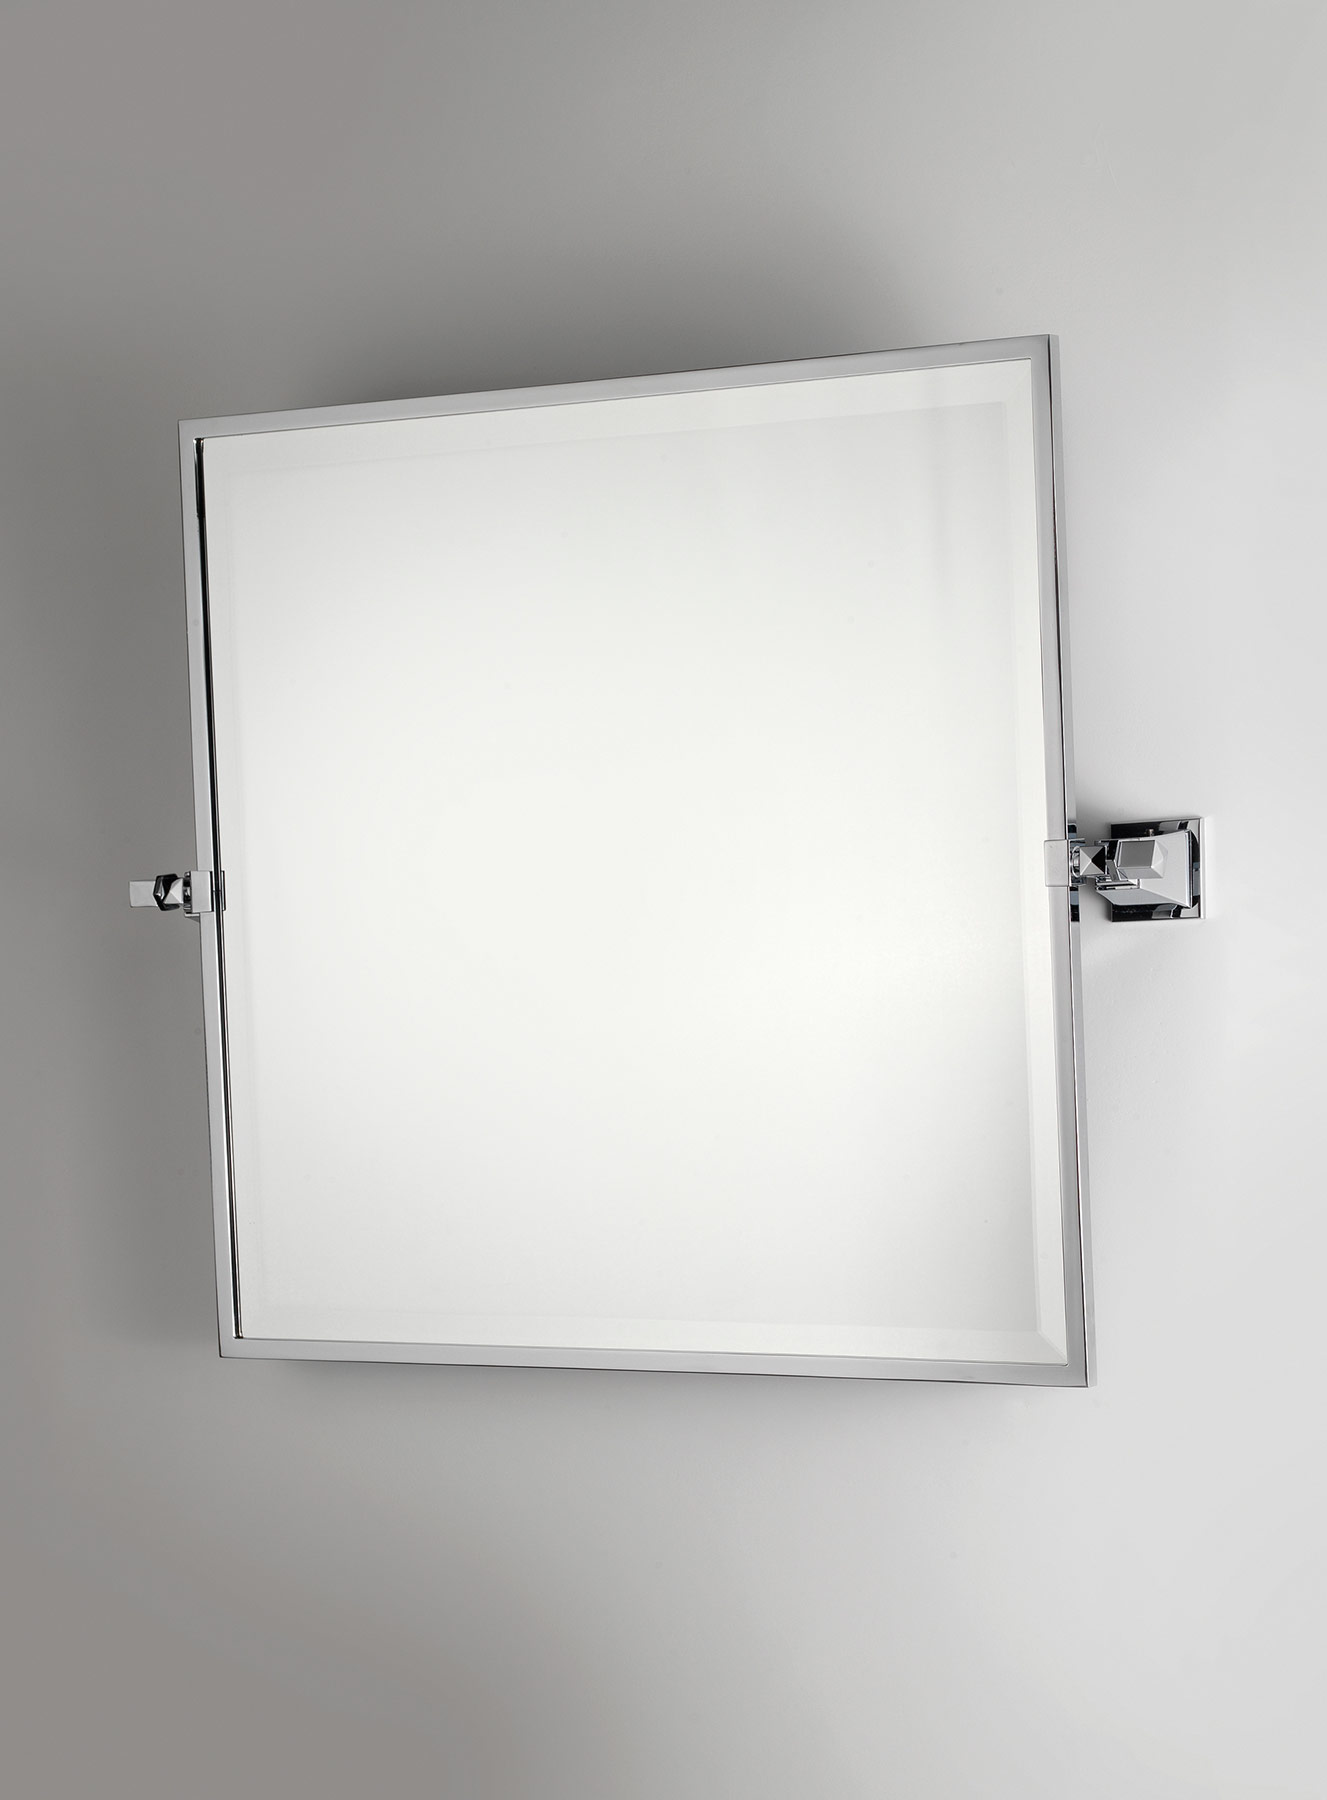 Transitional Time Wall Mount Mirror